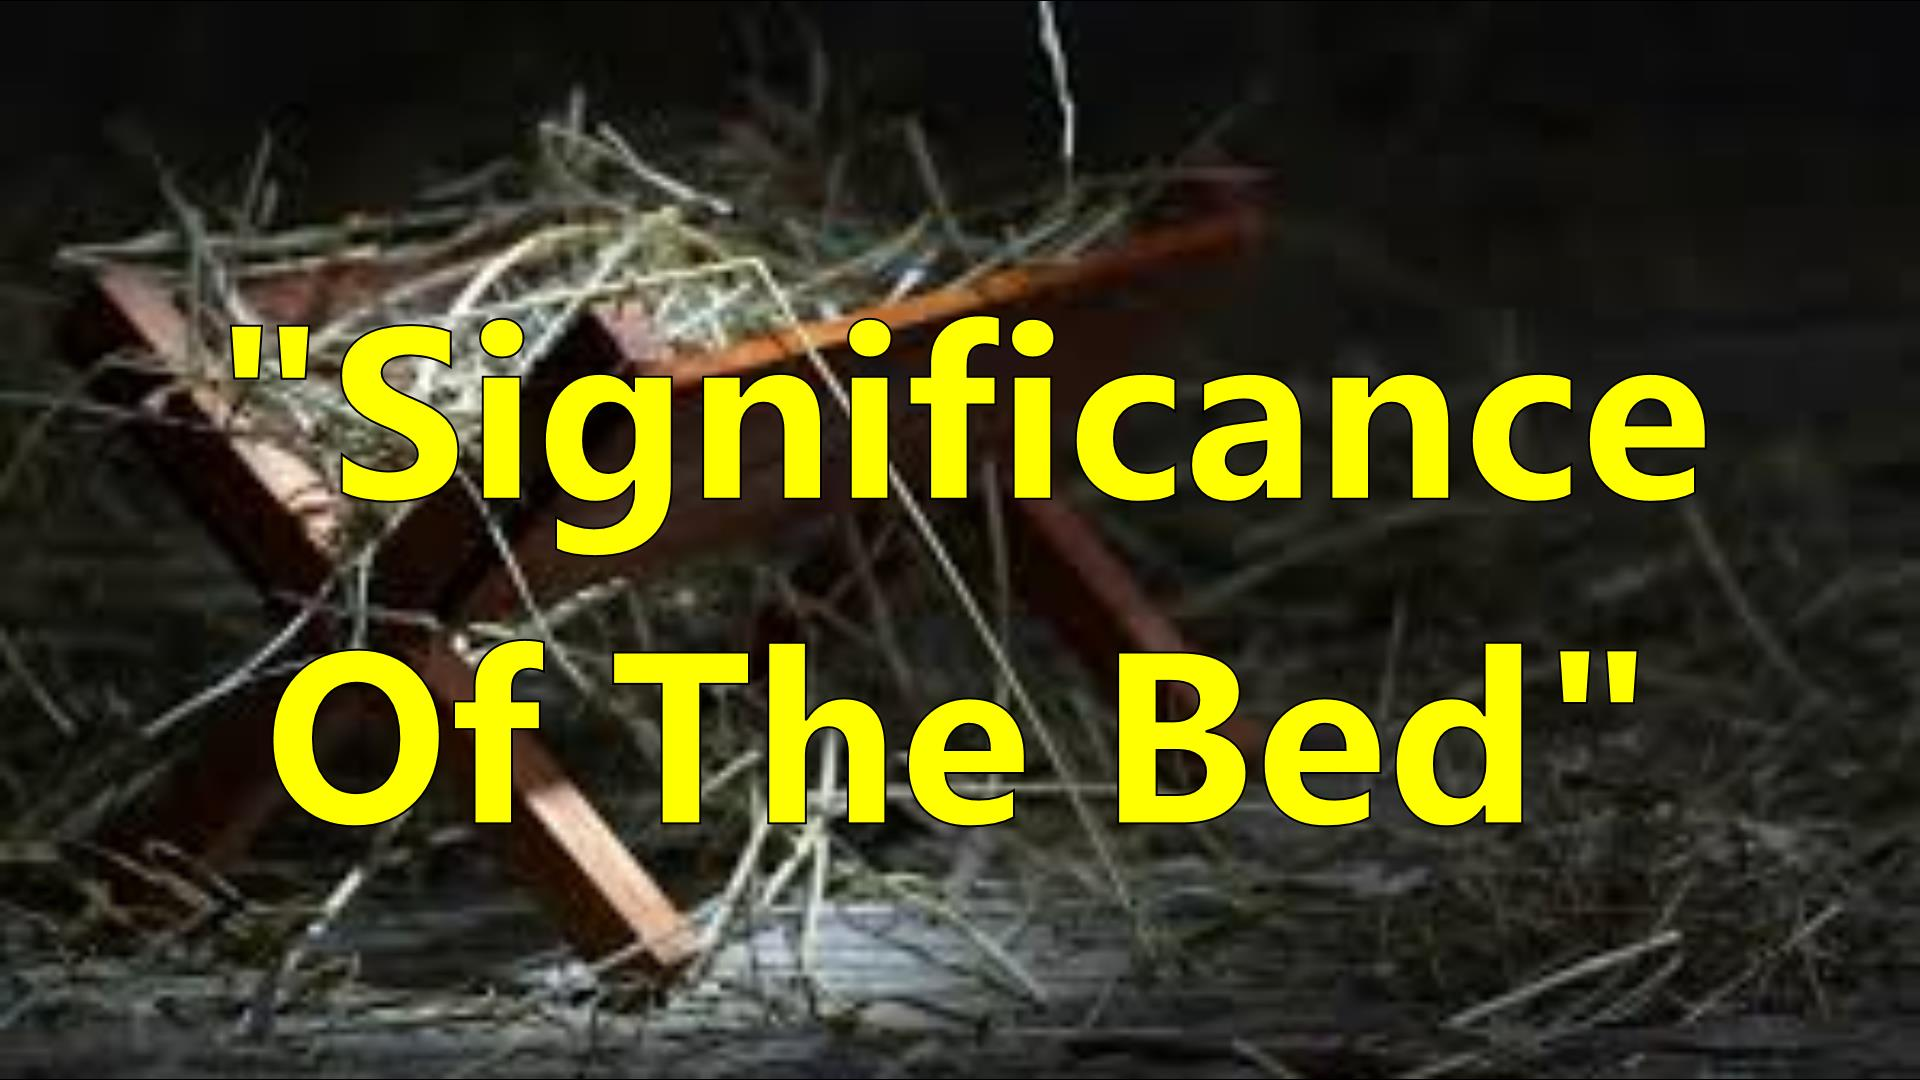 SIGNIFICANCE OF THE BED